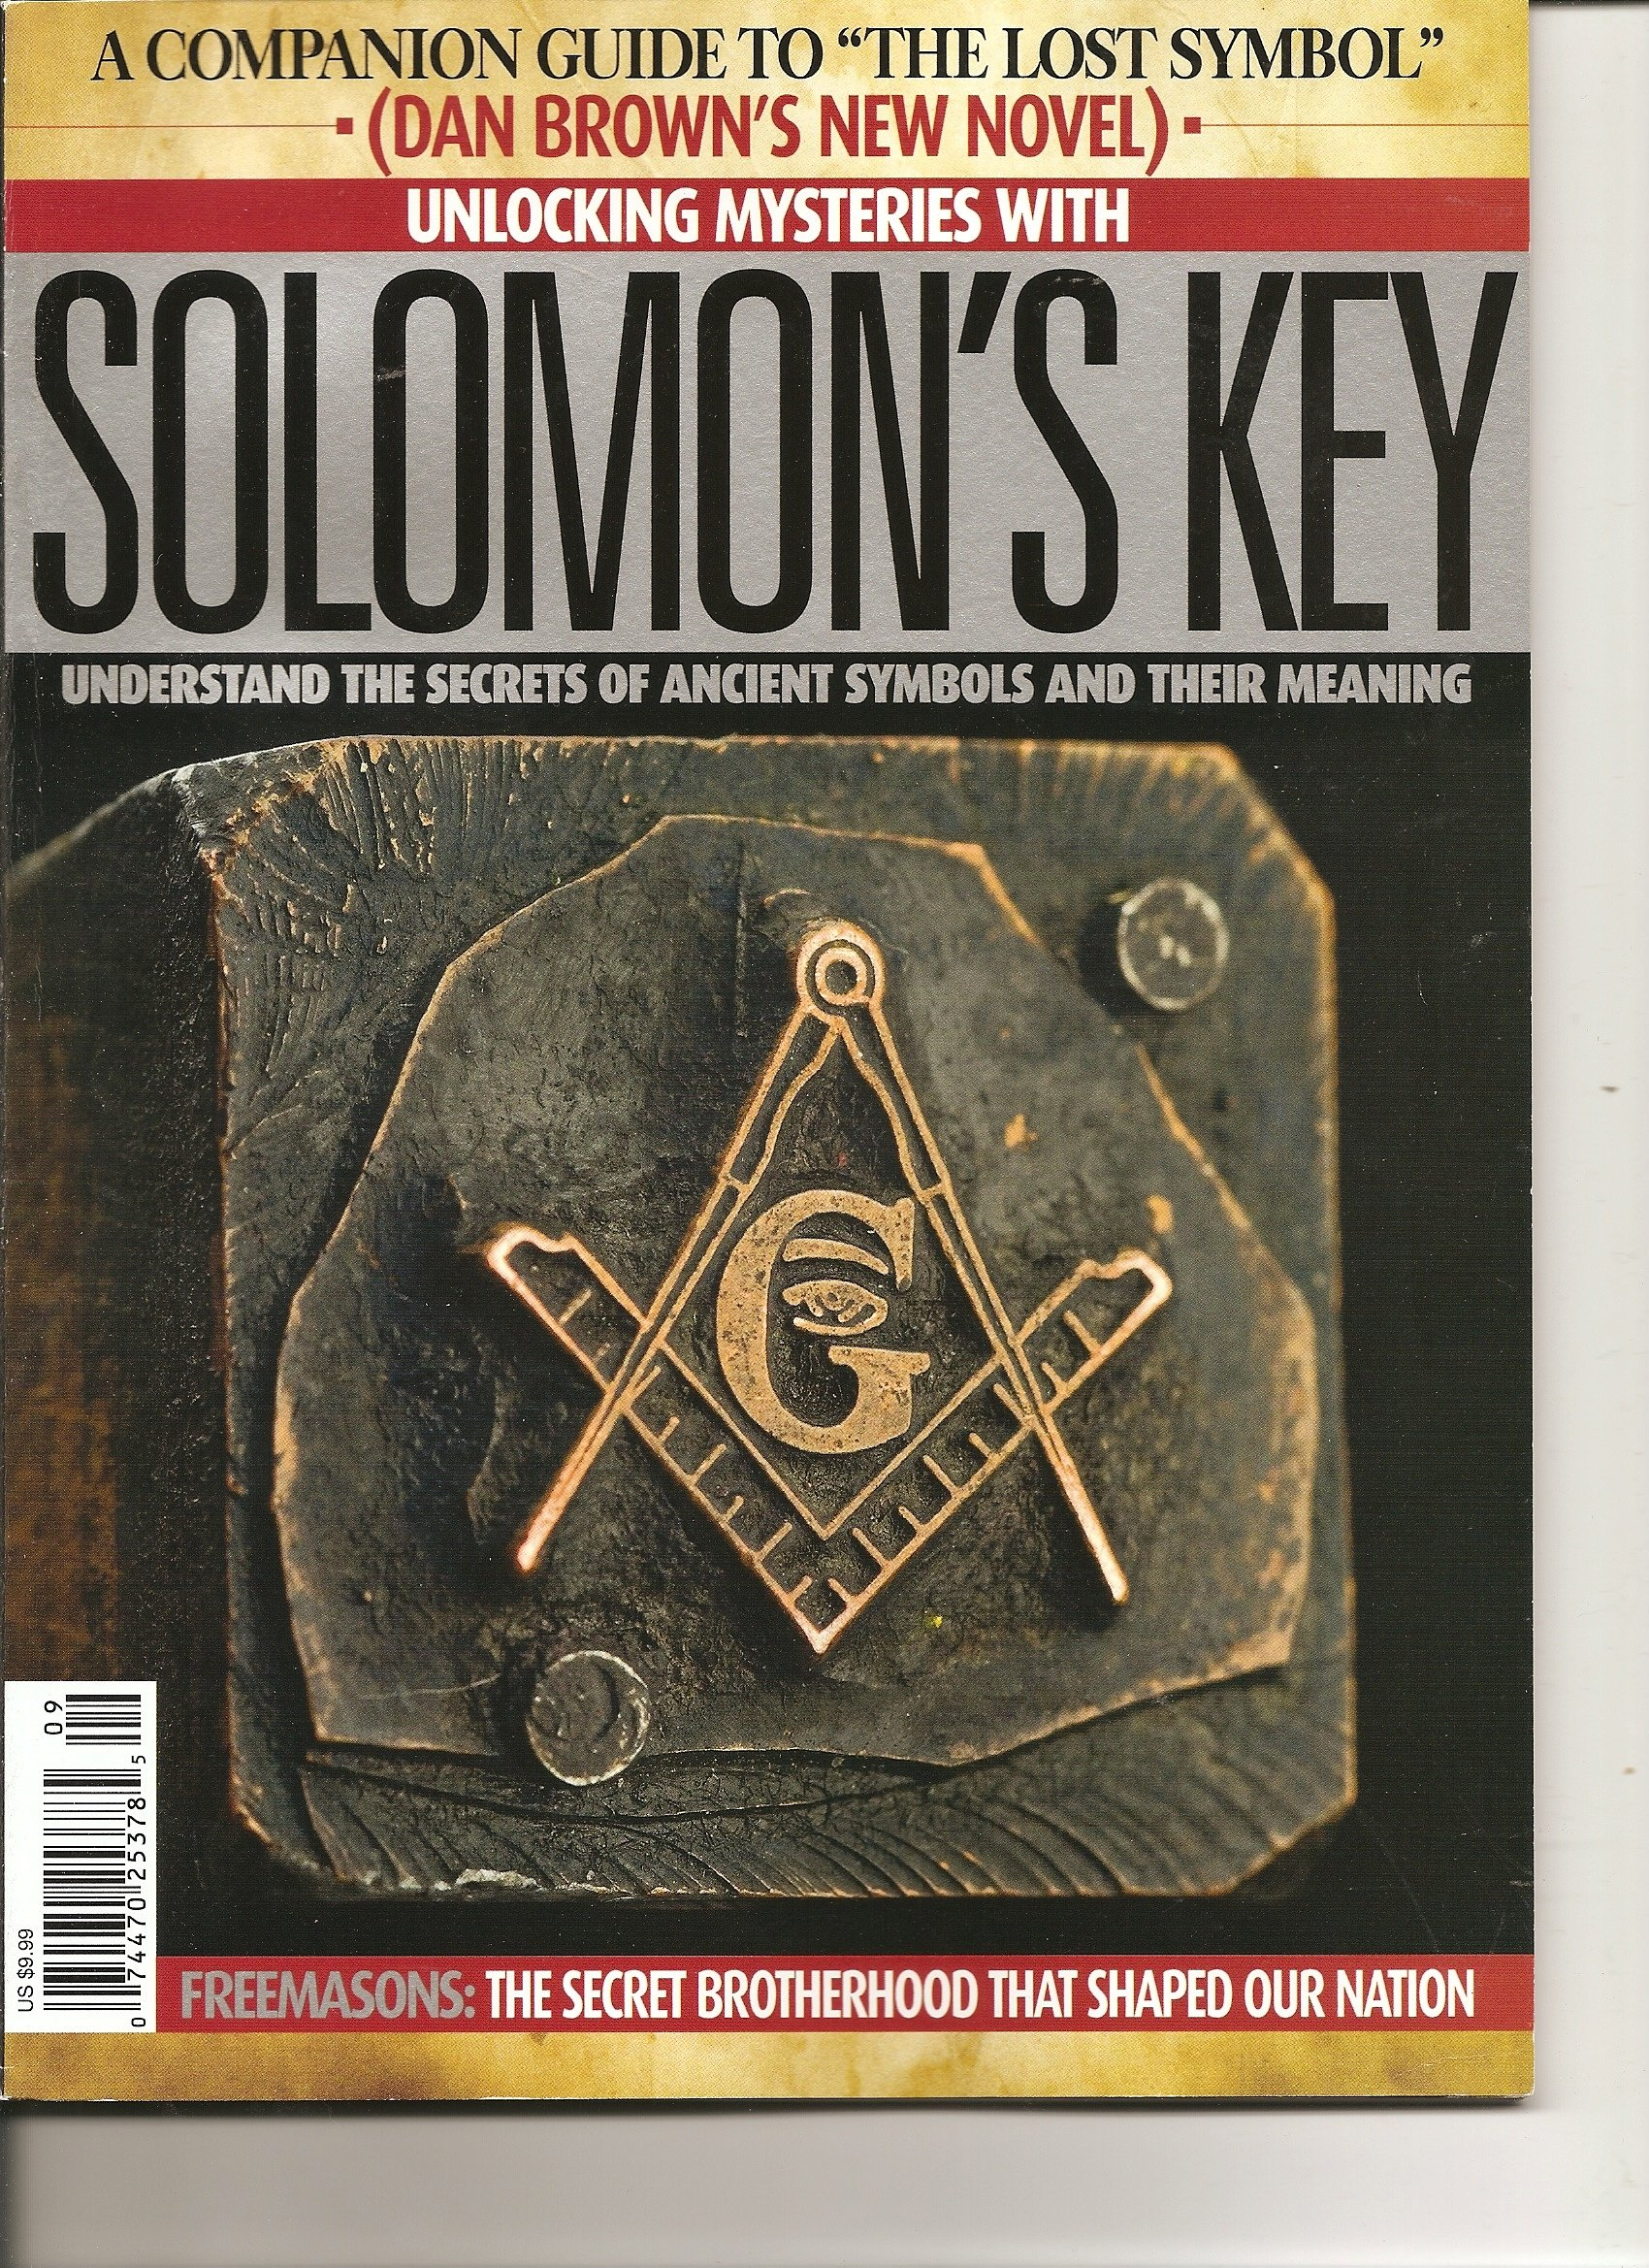 Unlocking mysteries with solomons key magazine a companion guide unlocking mysteries with solomons key magazine a companion guide to the lost symbol understanding the secrets of ancient symbols and their meaning biocorpaavc Images